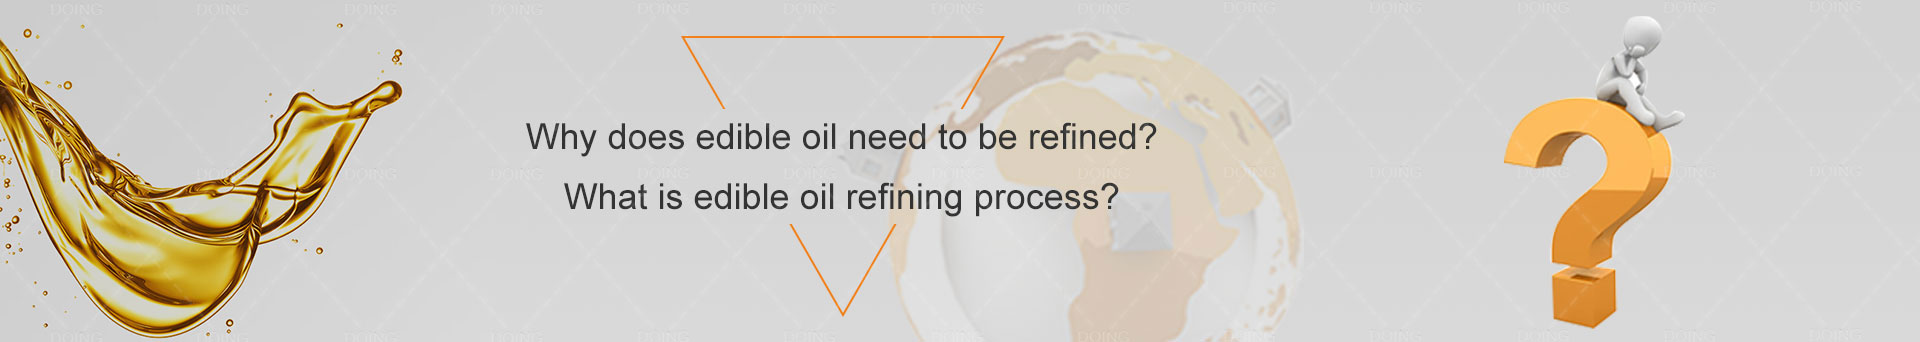 edible oil refining method, technology